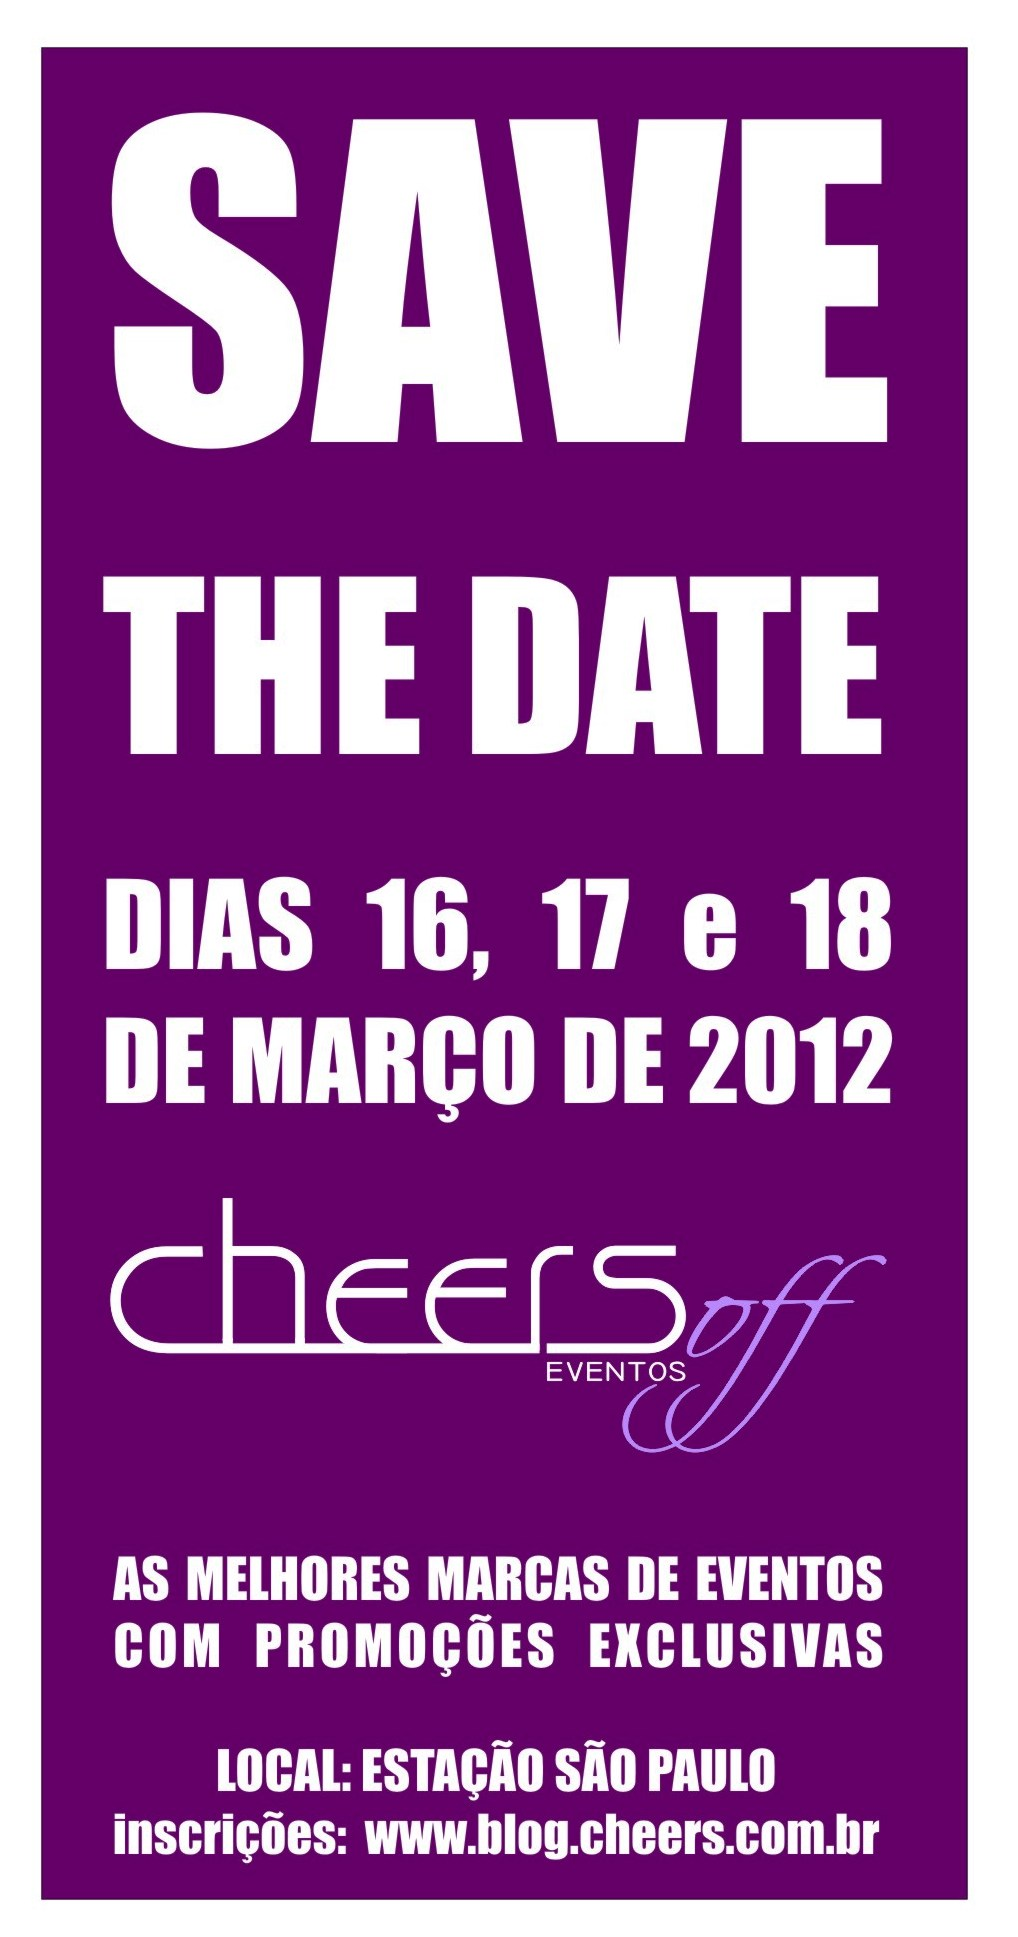 save the date cheers off Cheers OFF 3ª Edição fotografo